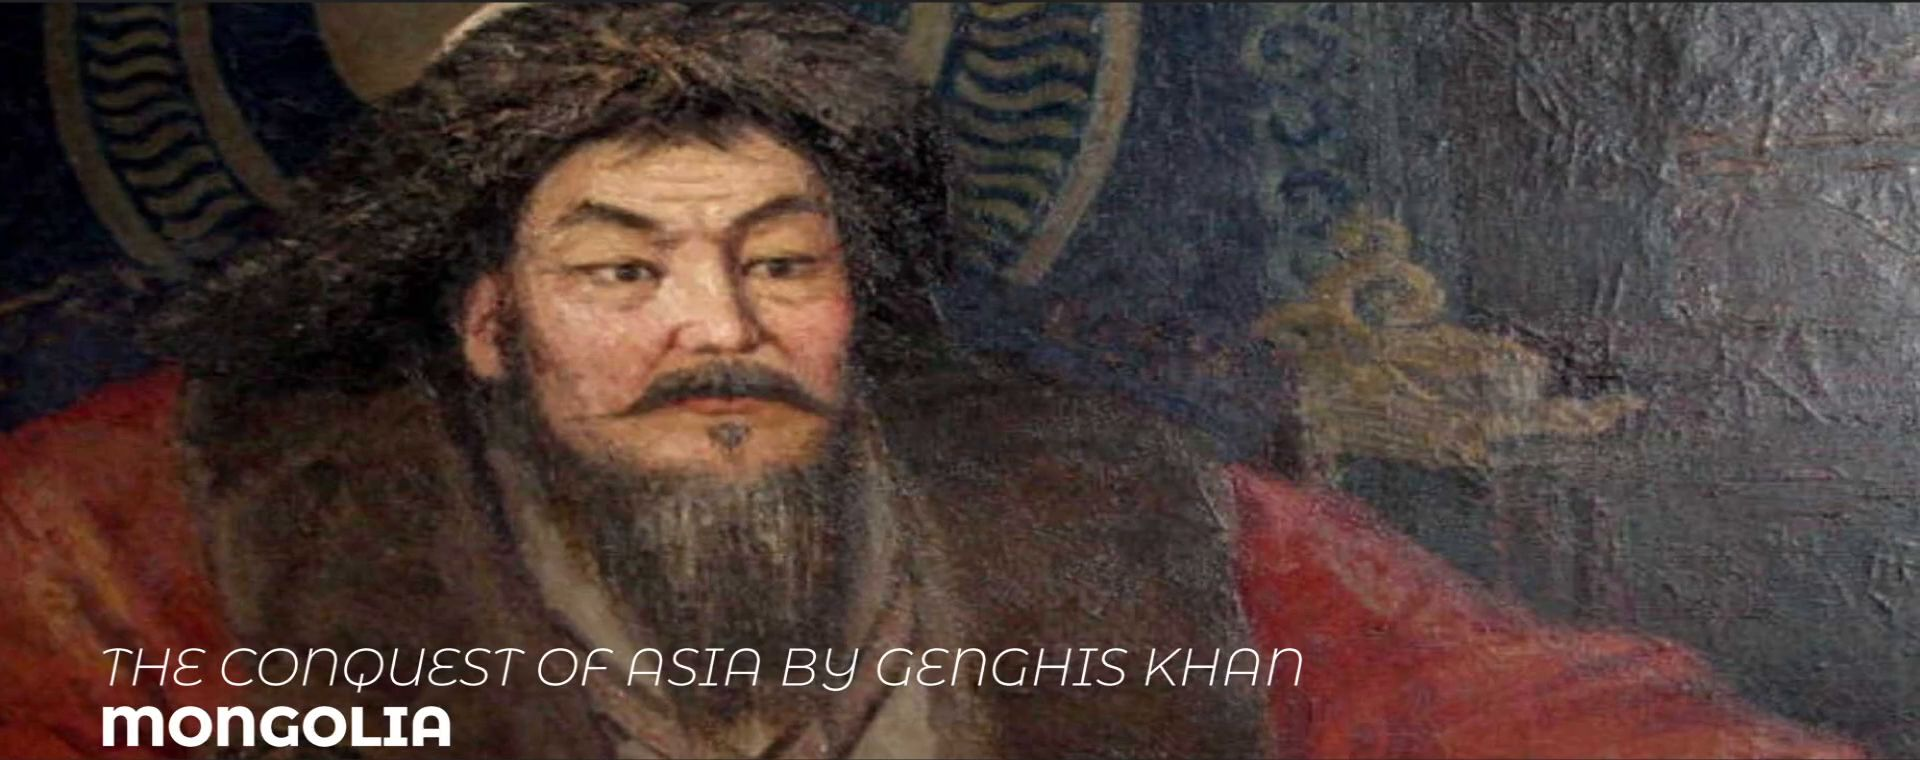 THE CONQUEST OF ASIA BY GENGHIS KHAN